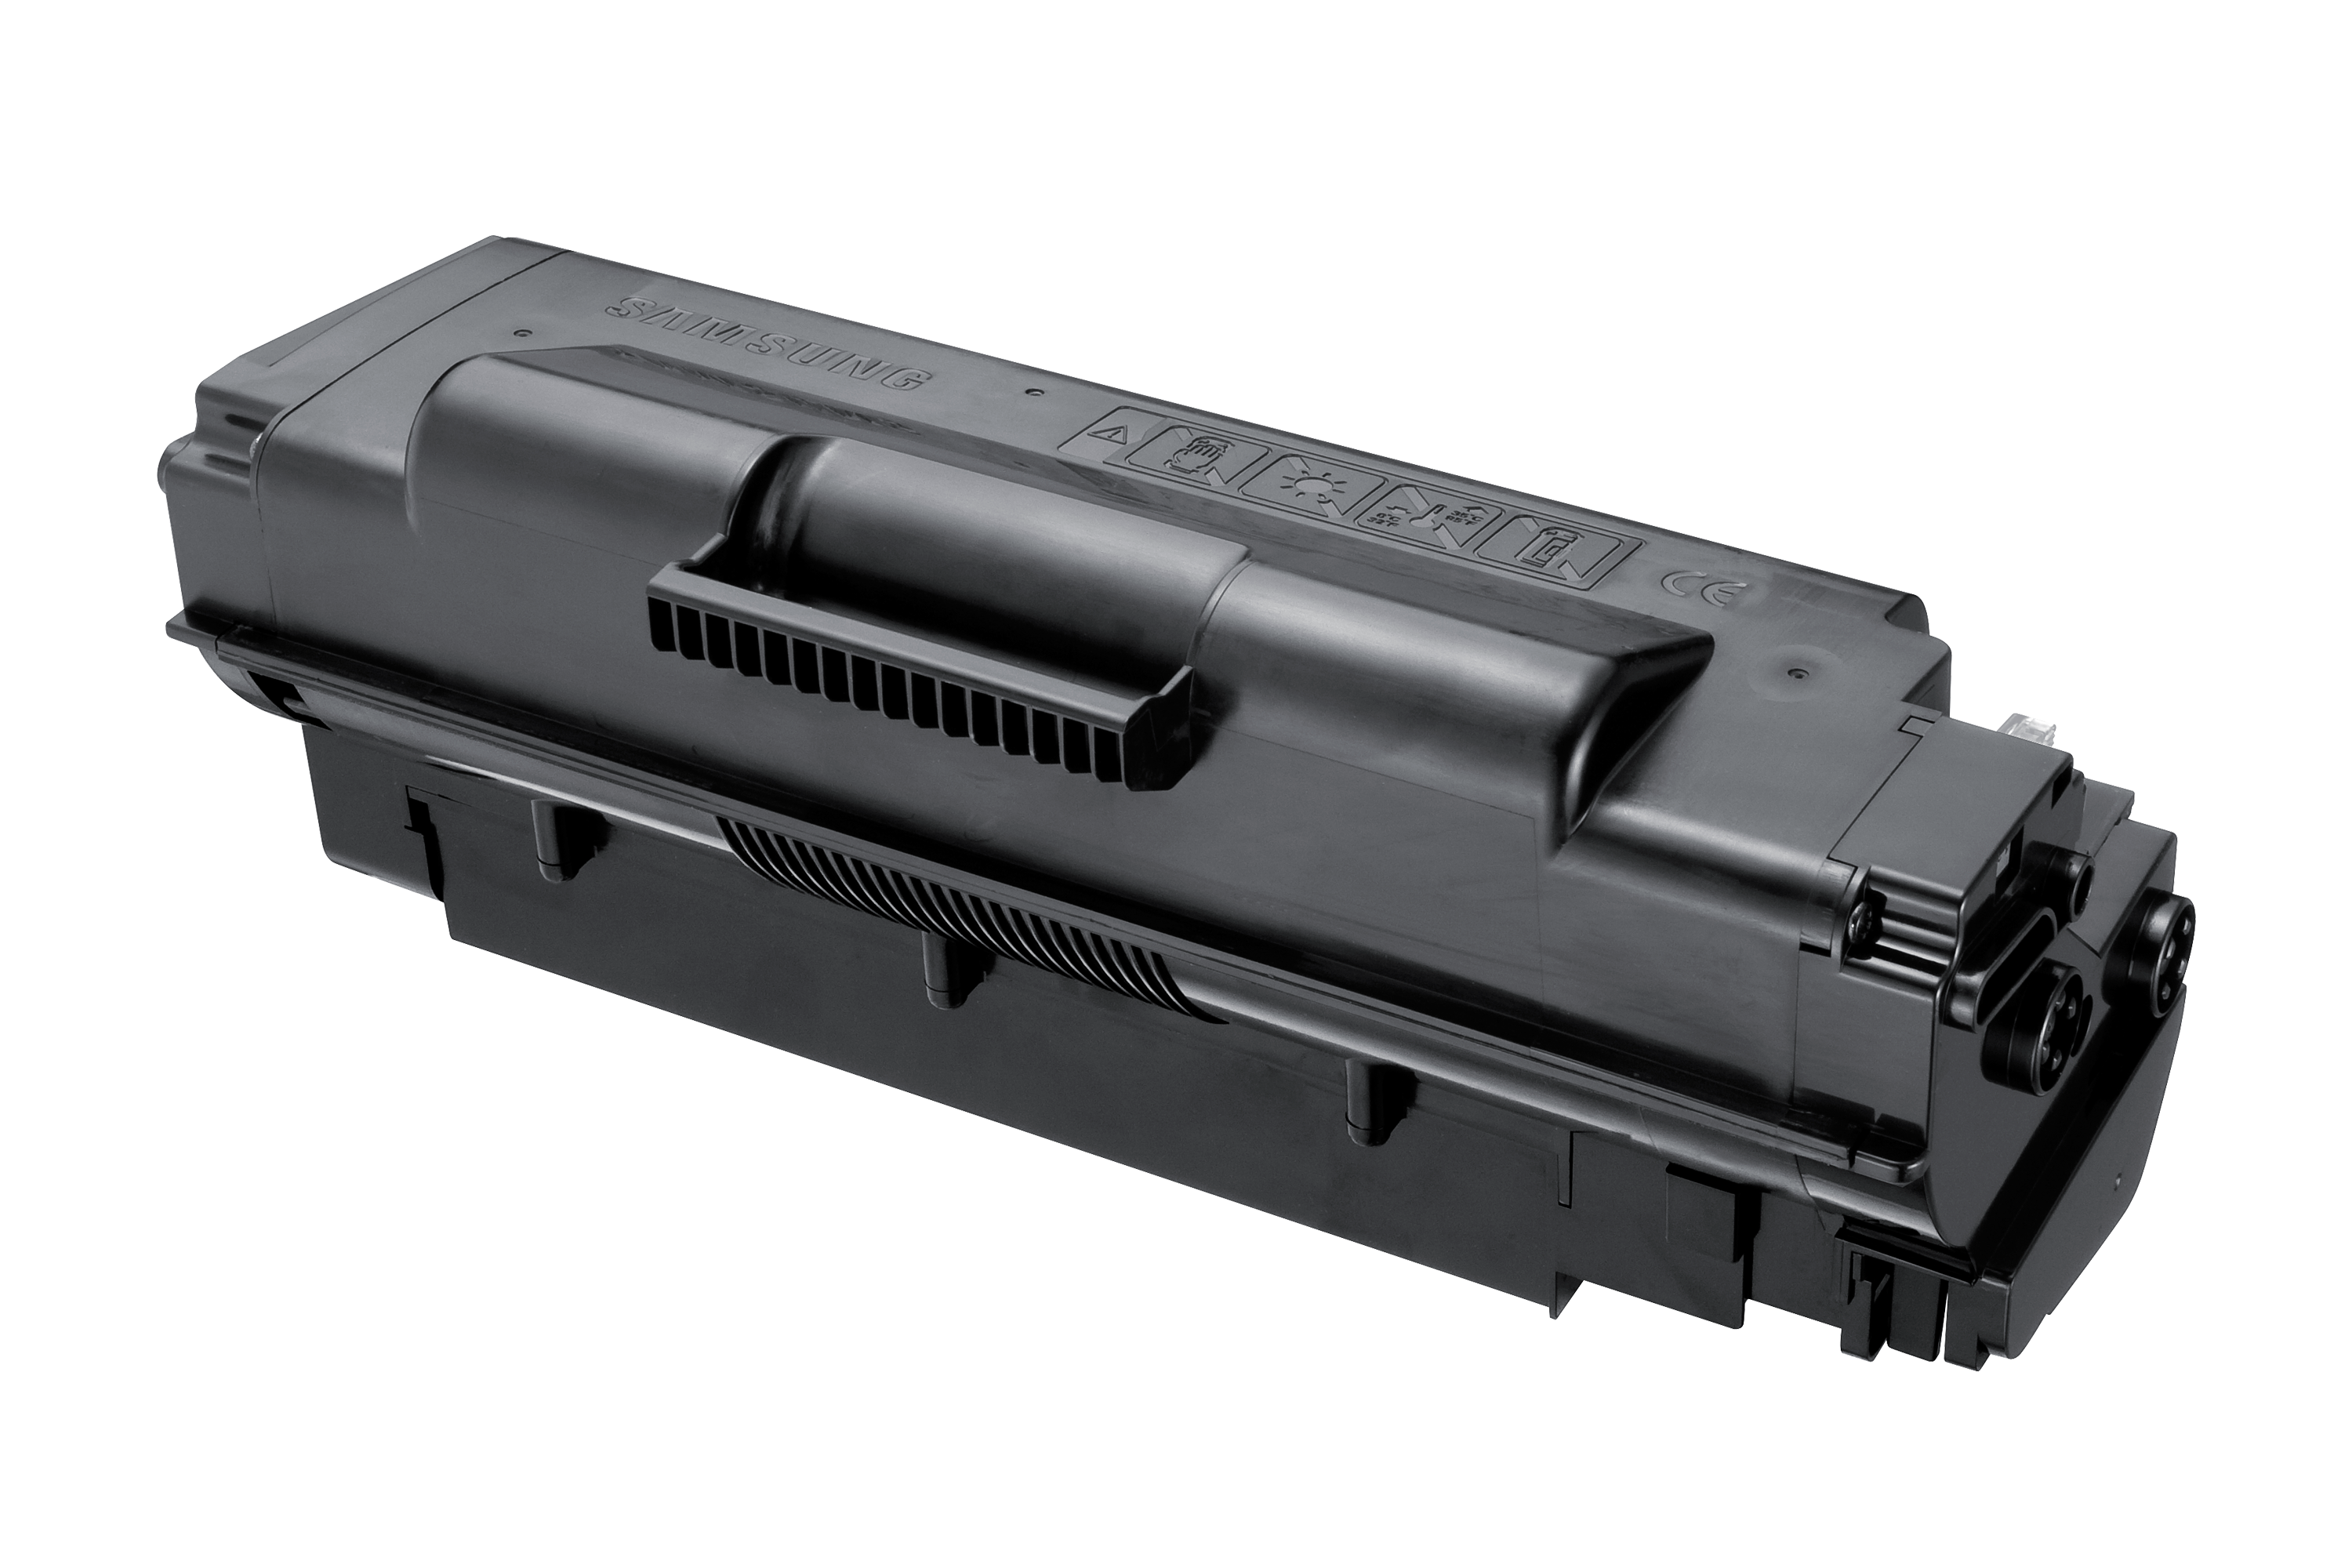 MLT-D307S Black Toner Cartridge